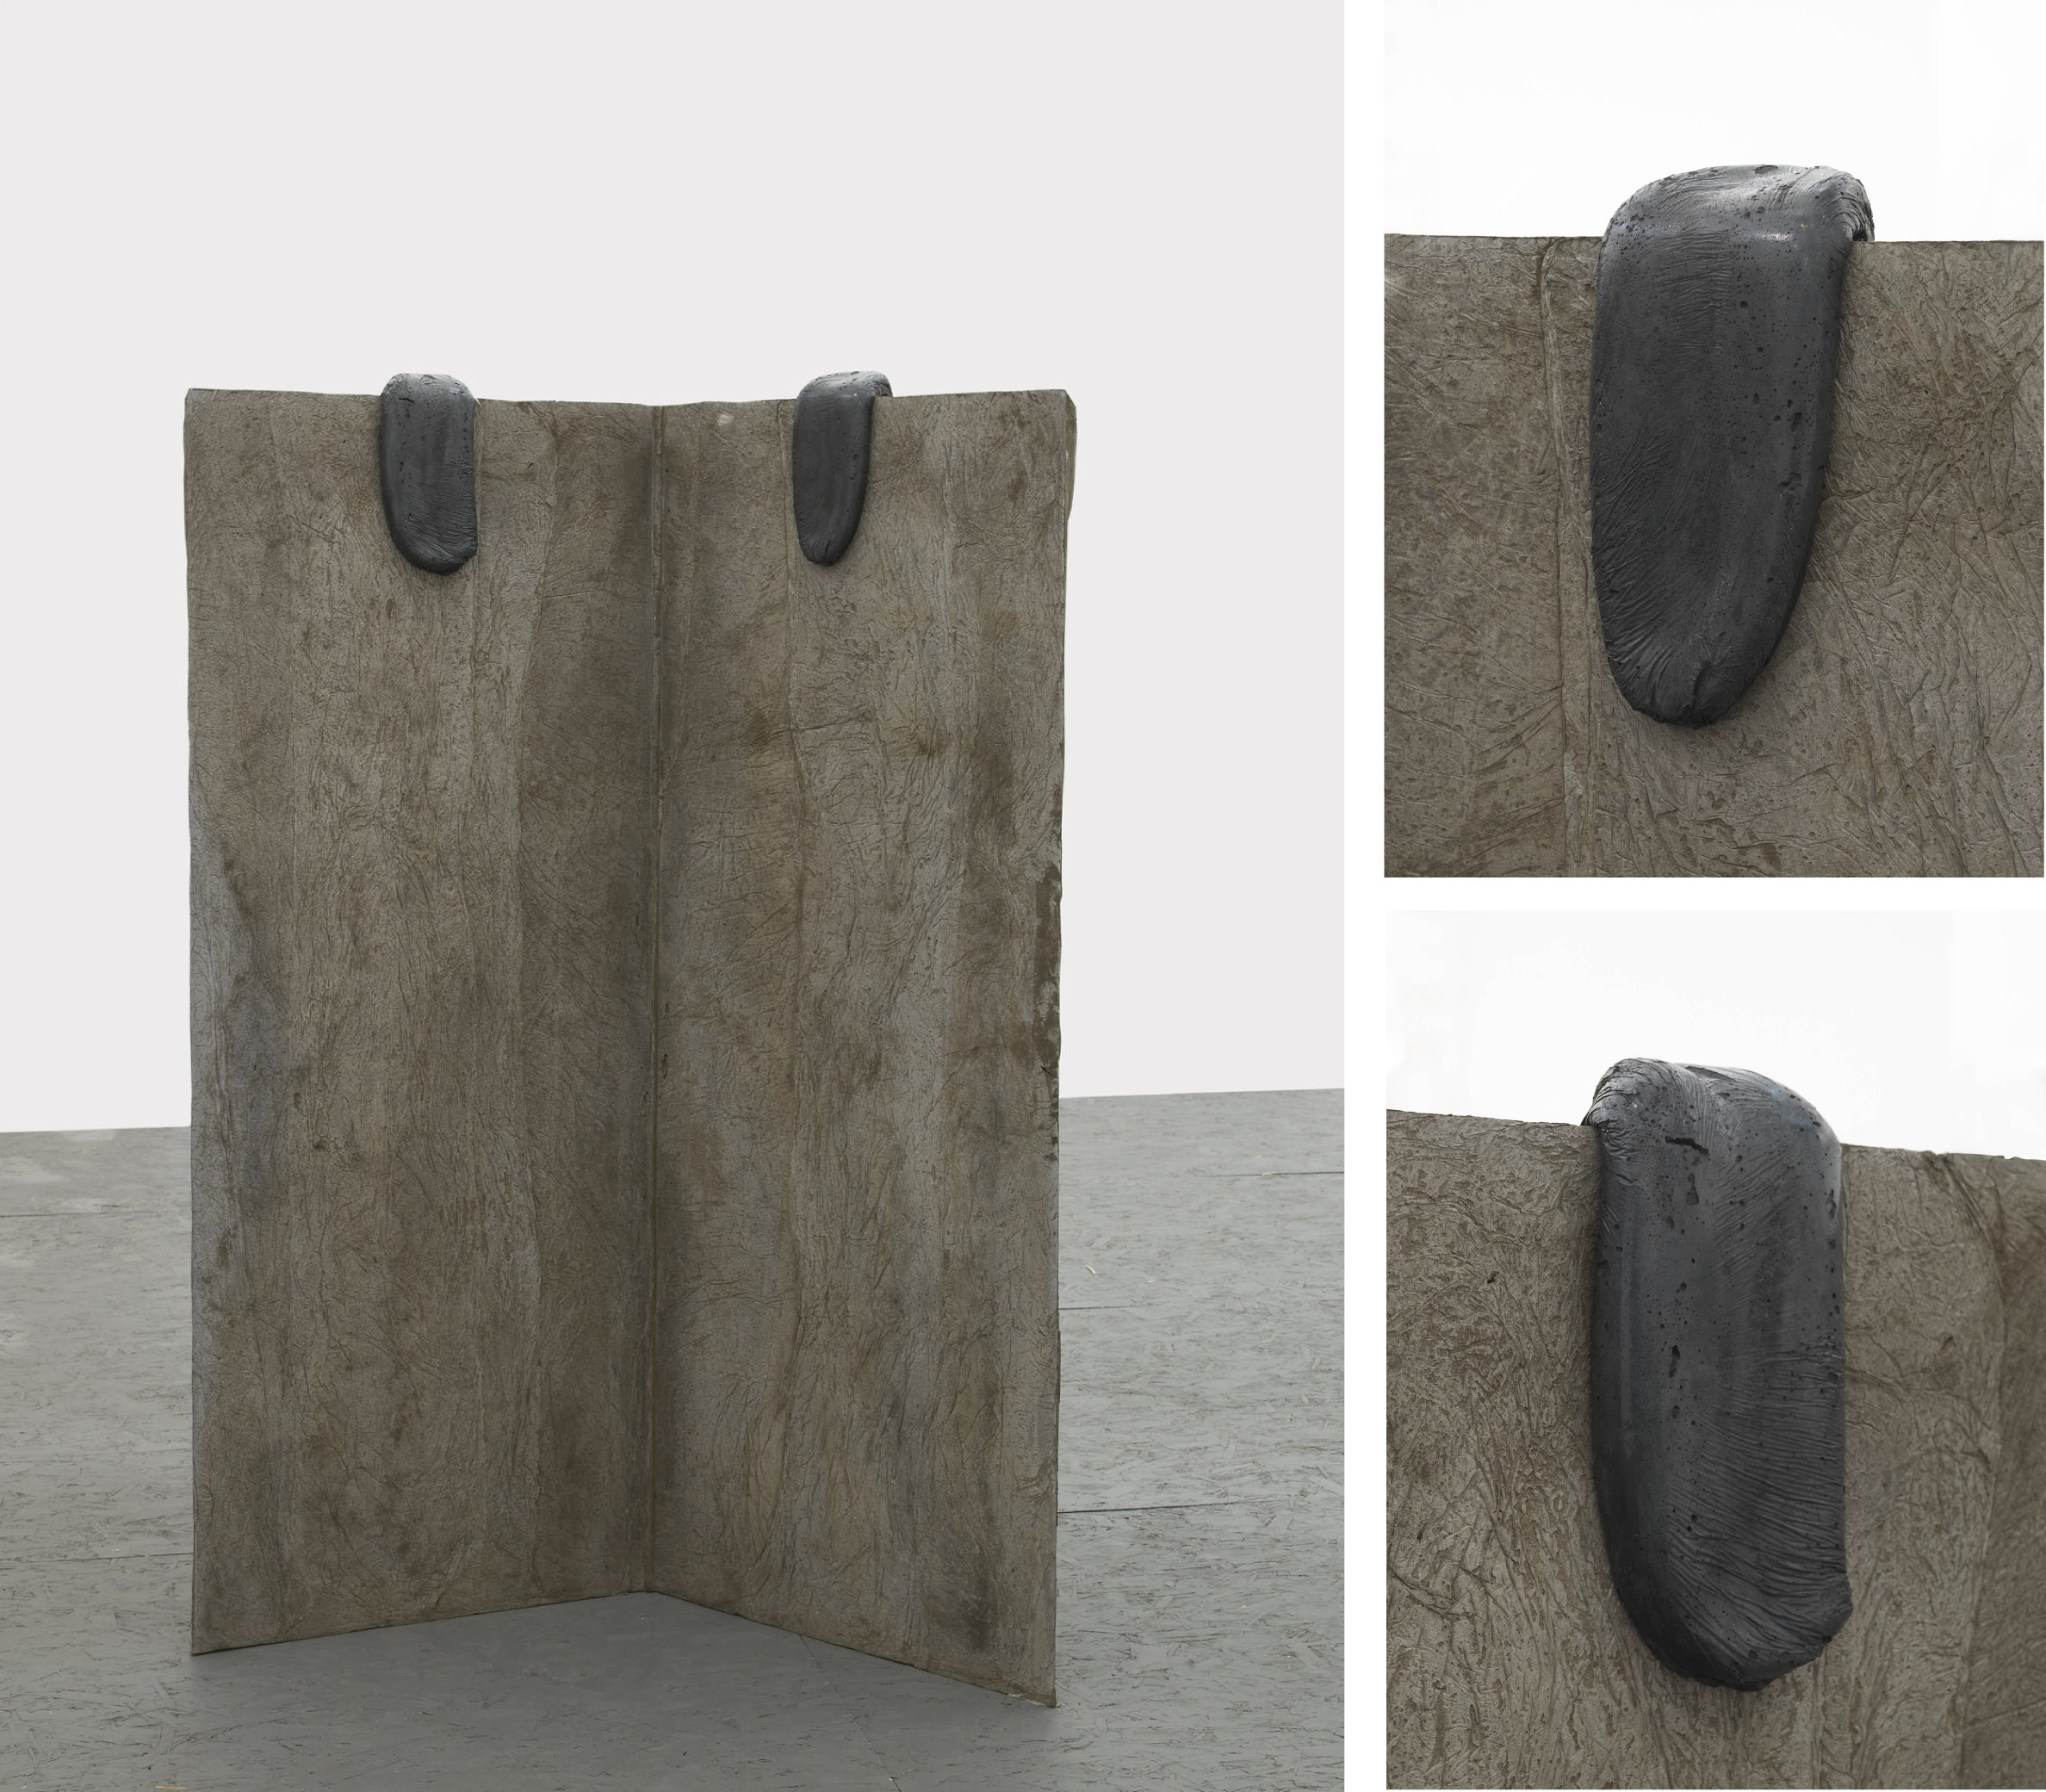 LL / UU (Working Title)  2013  Concrete  158 x 50 x 104 cm / 62.2 x 19.6 40.9 in